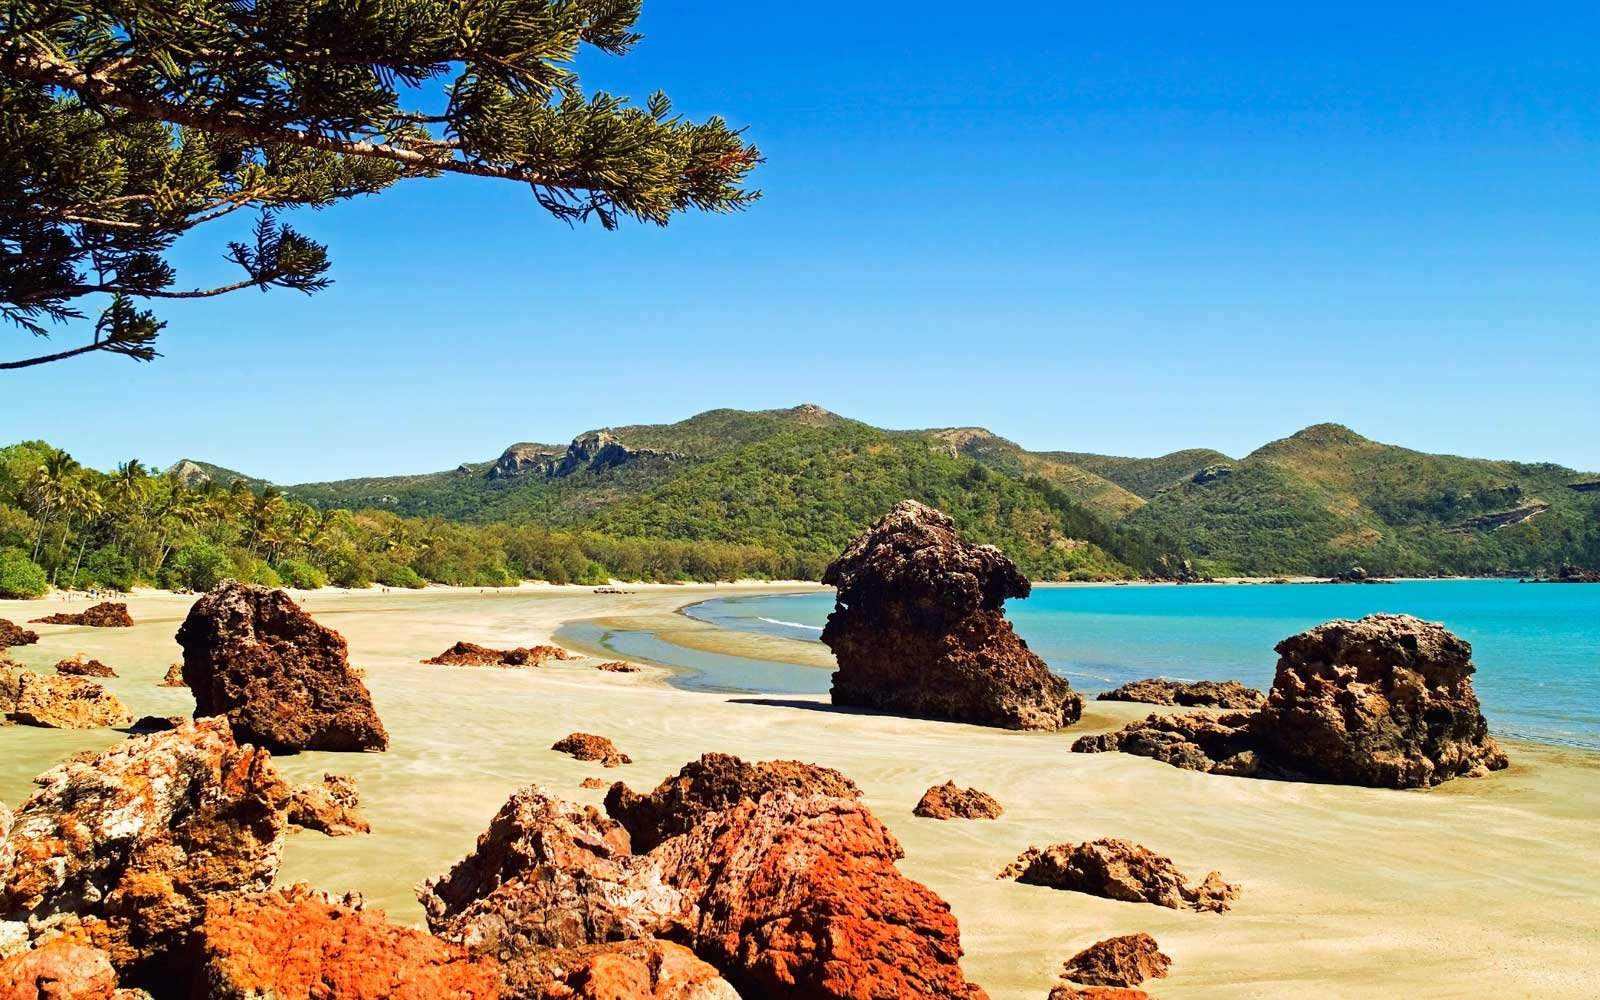 Casuarina Beach in Cape Hillsborough National Park, Queensland, Australia